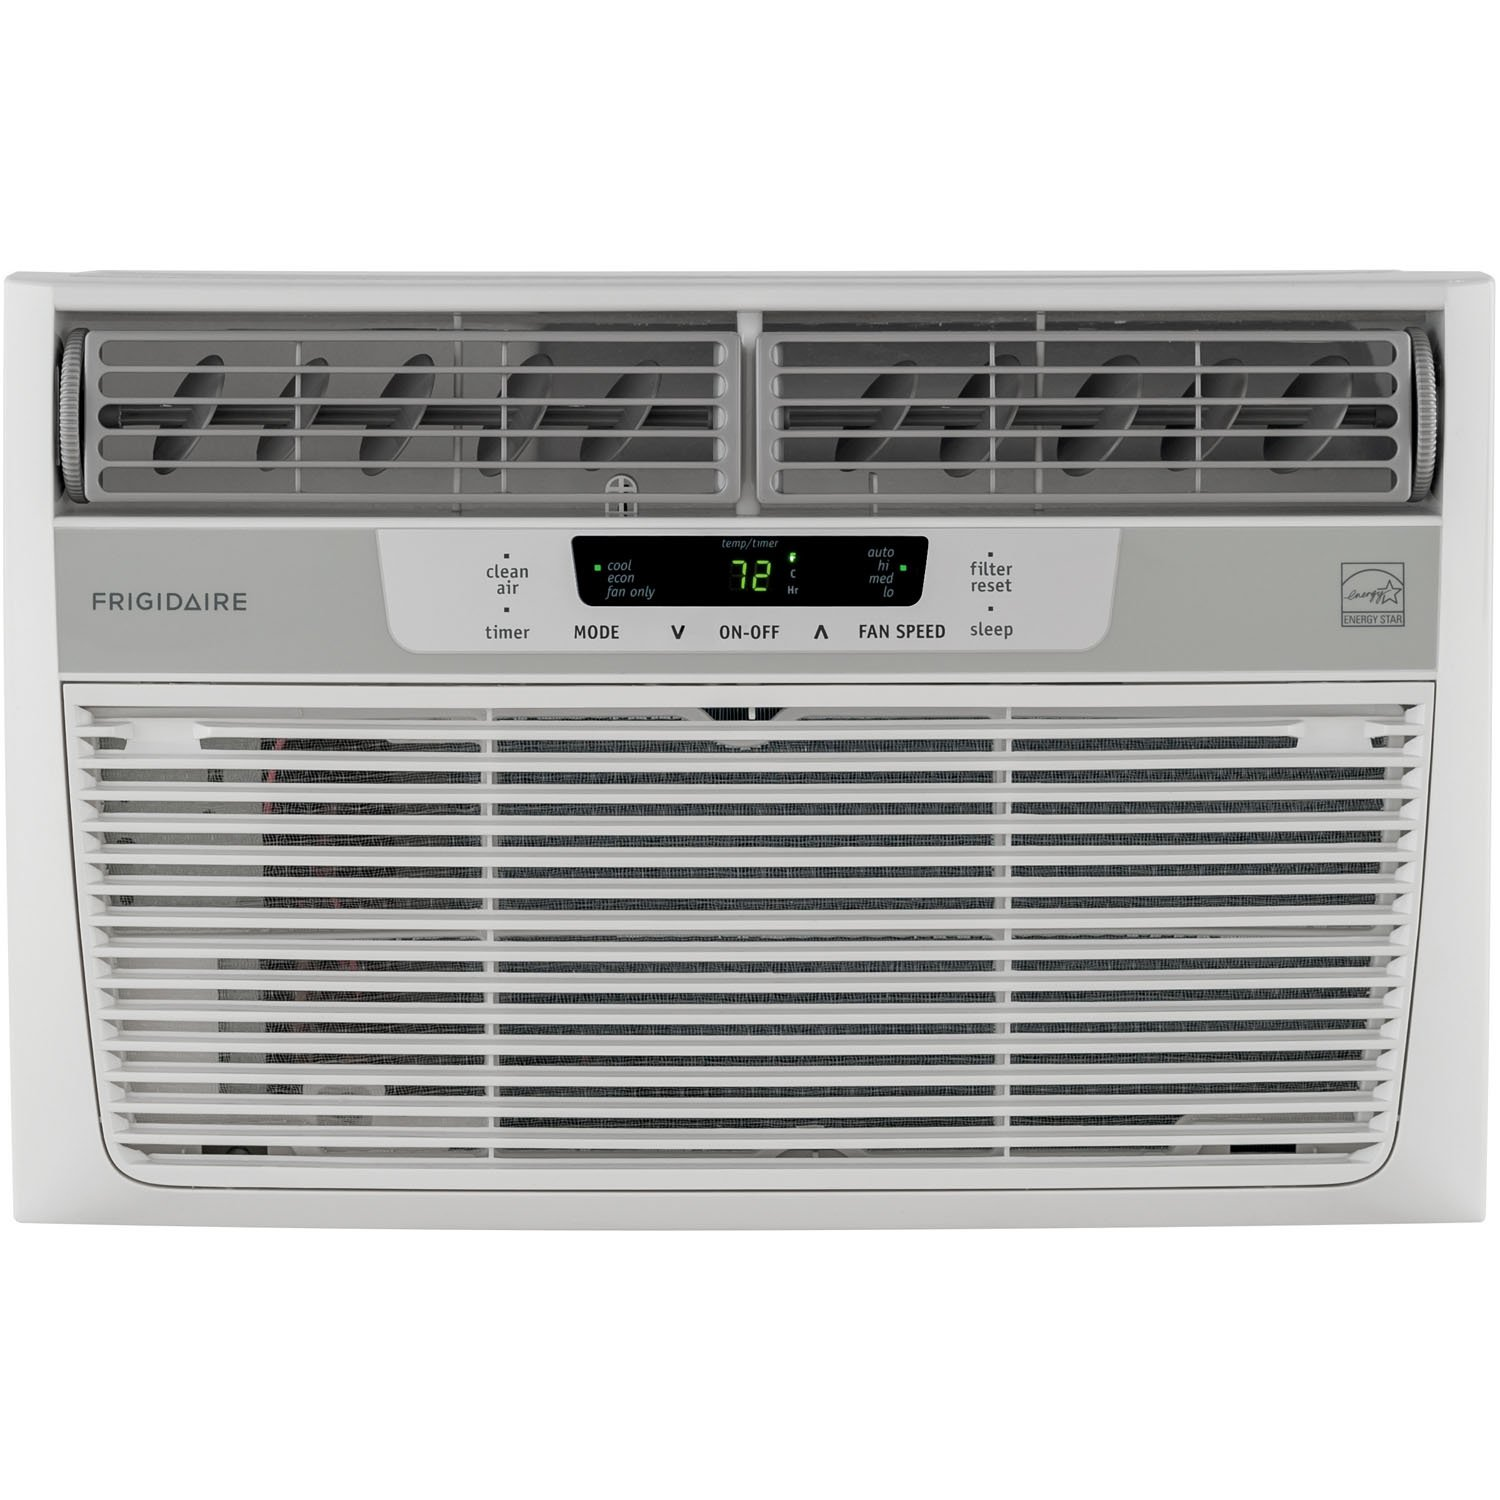 Frigidaire FRA086AT7 8 000 BTU Window Air Conditioner Review #4D6147